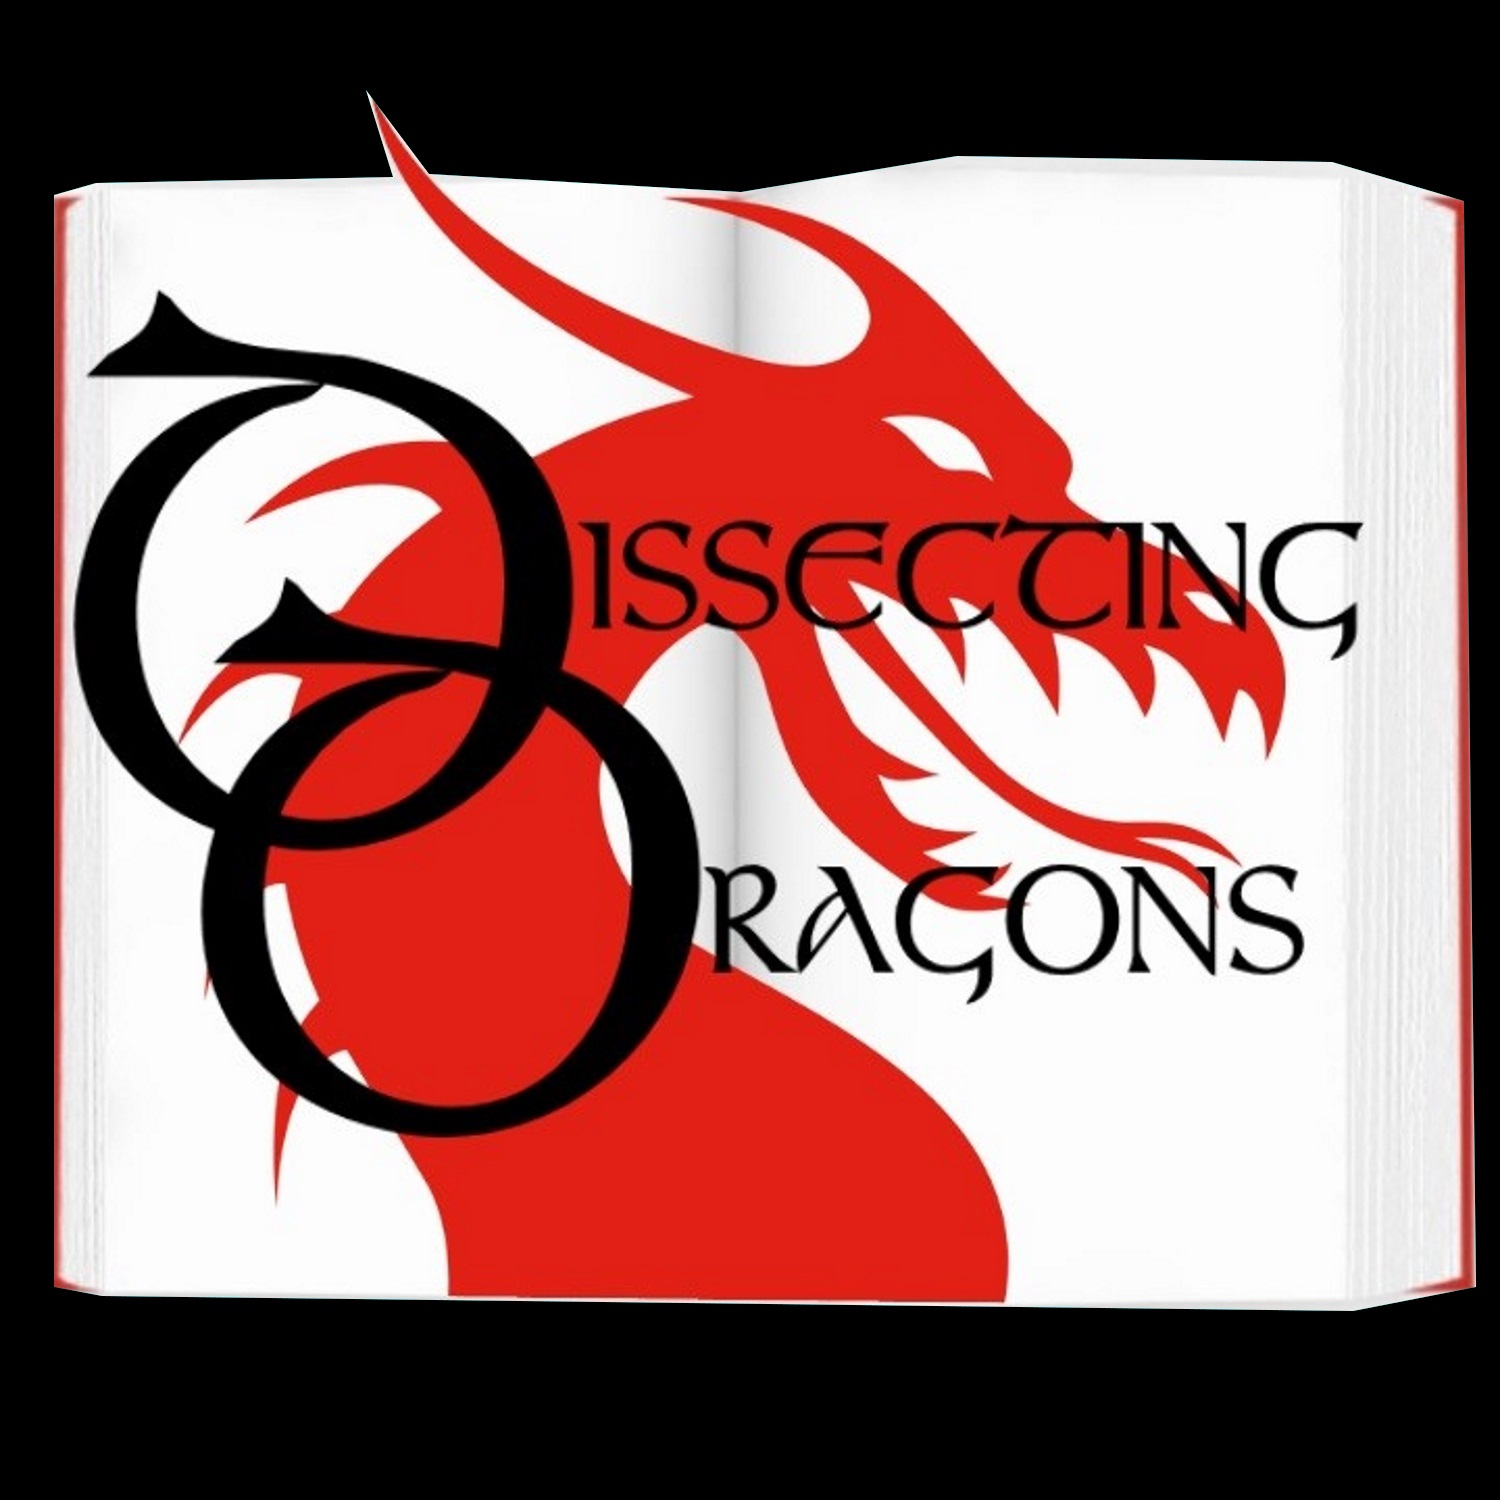 Dissecting Dragons: Episode 55: Break 'em to Make 'em - the Heroes who Rise from the Ashes